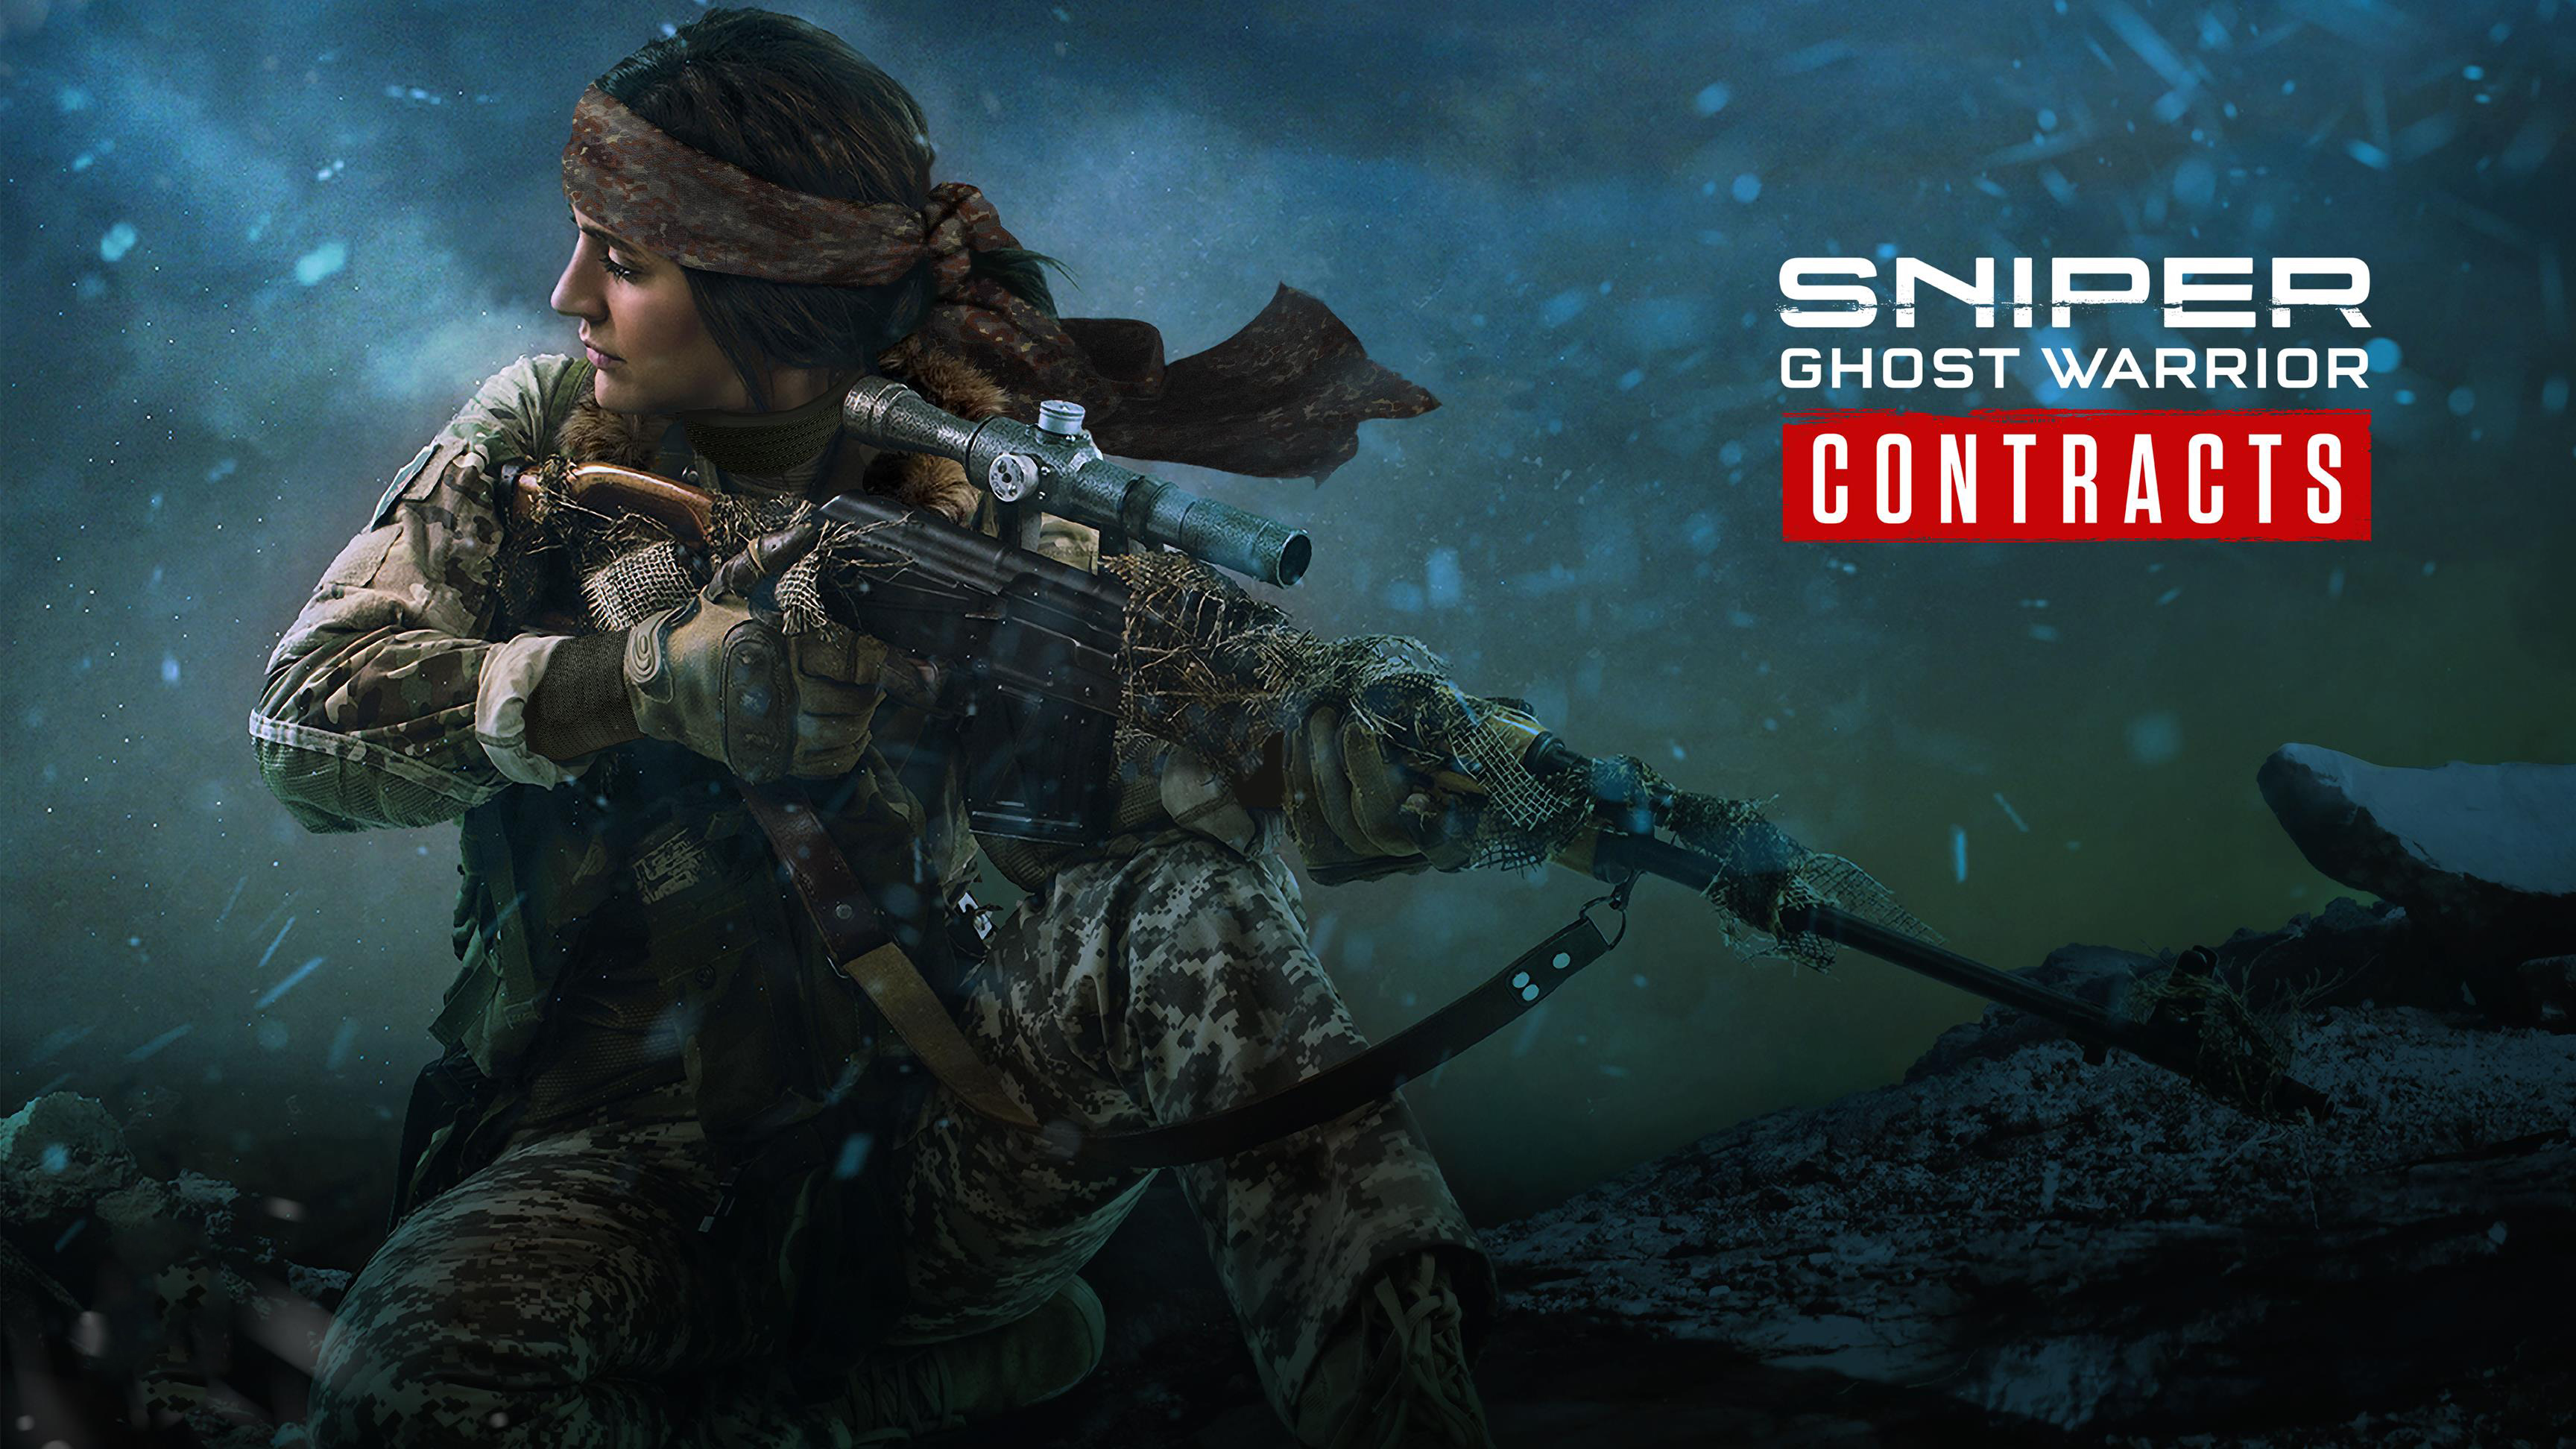 Sniper Ghost Warrior Contracts 2019 Hd Games 4k Wallpapers Images Backgrounds Photos And Pictures